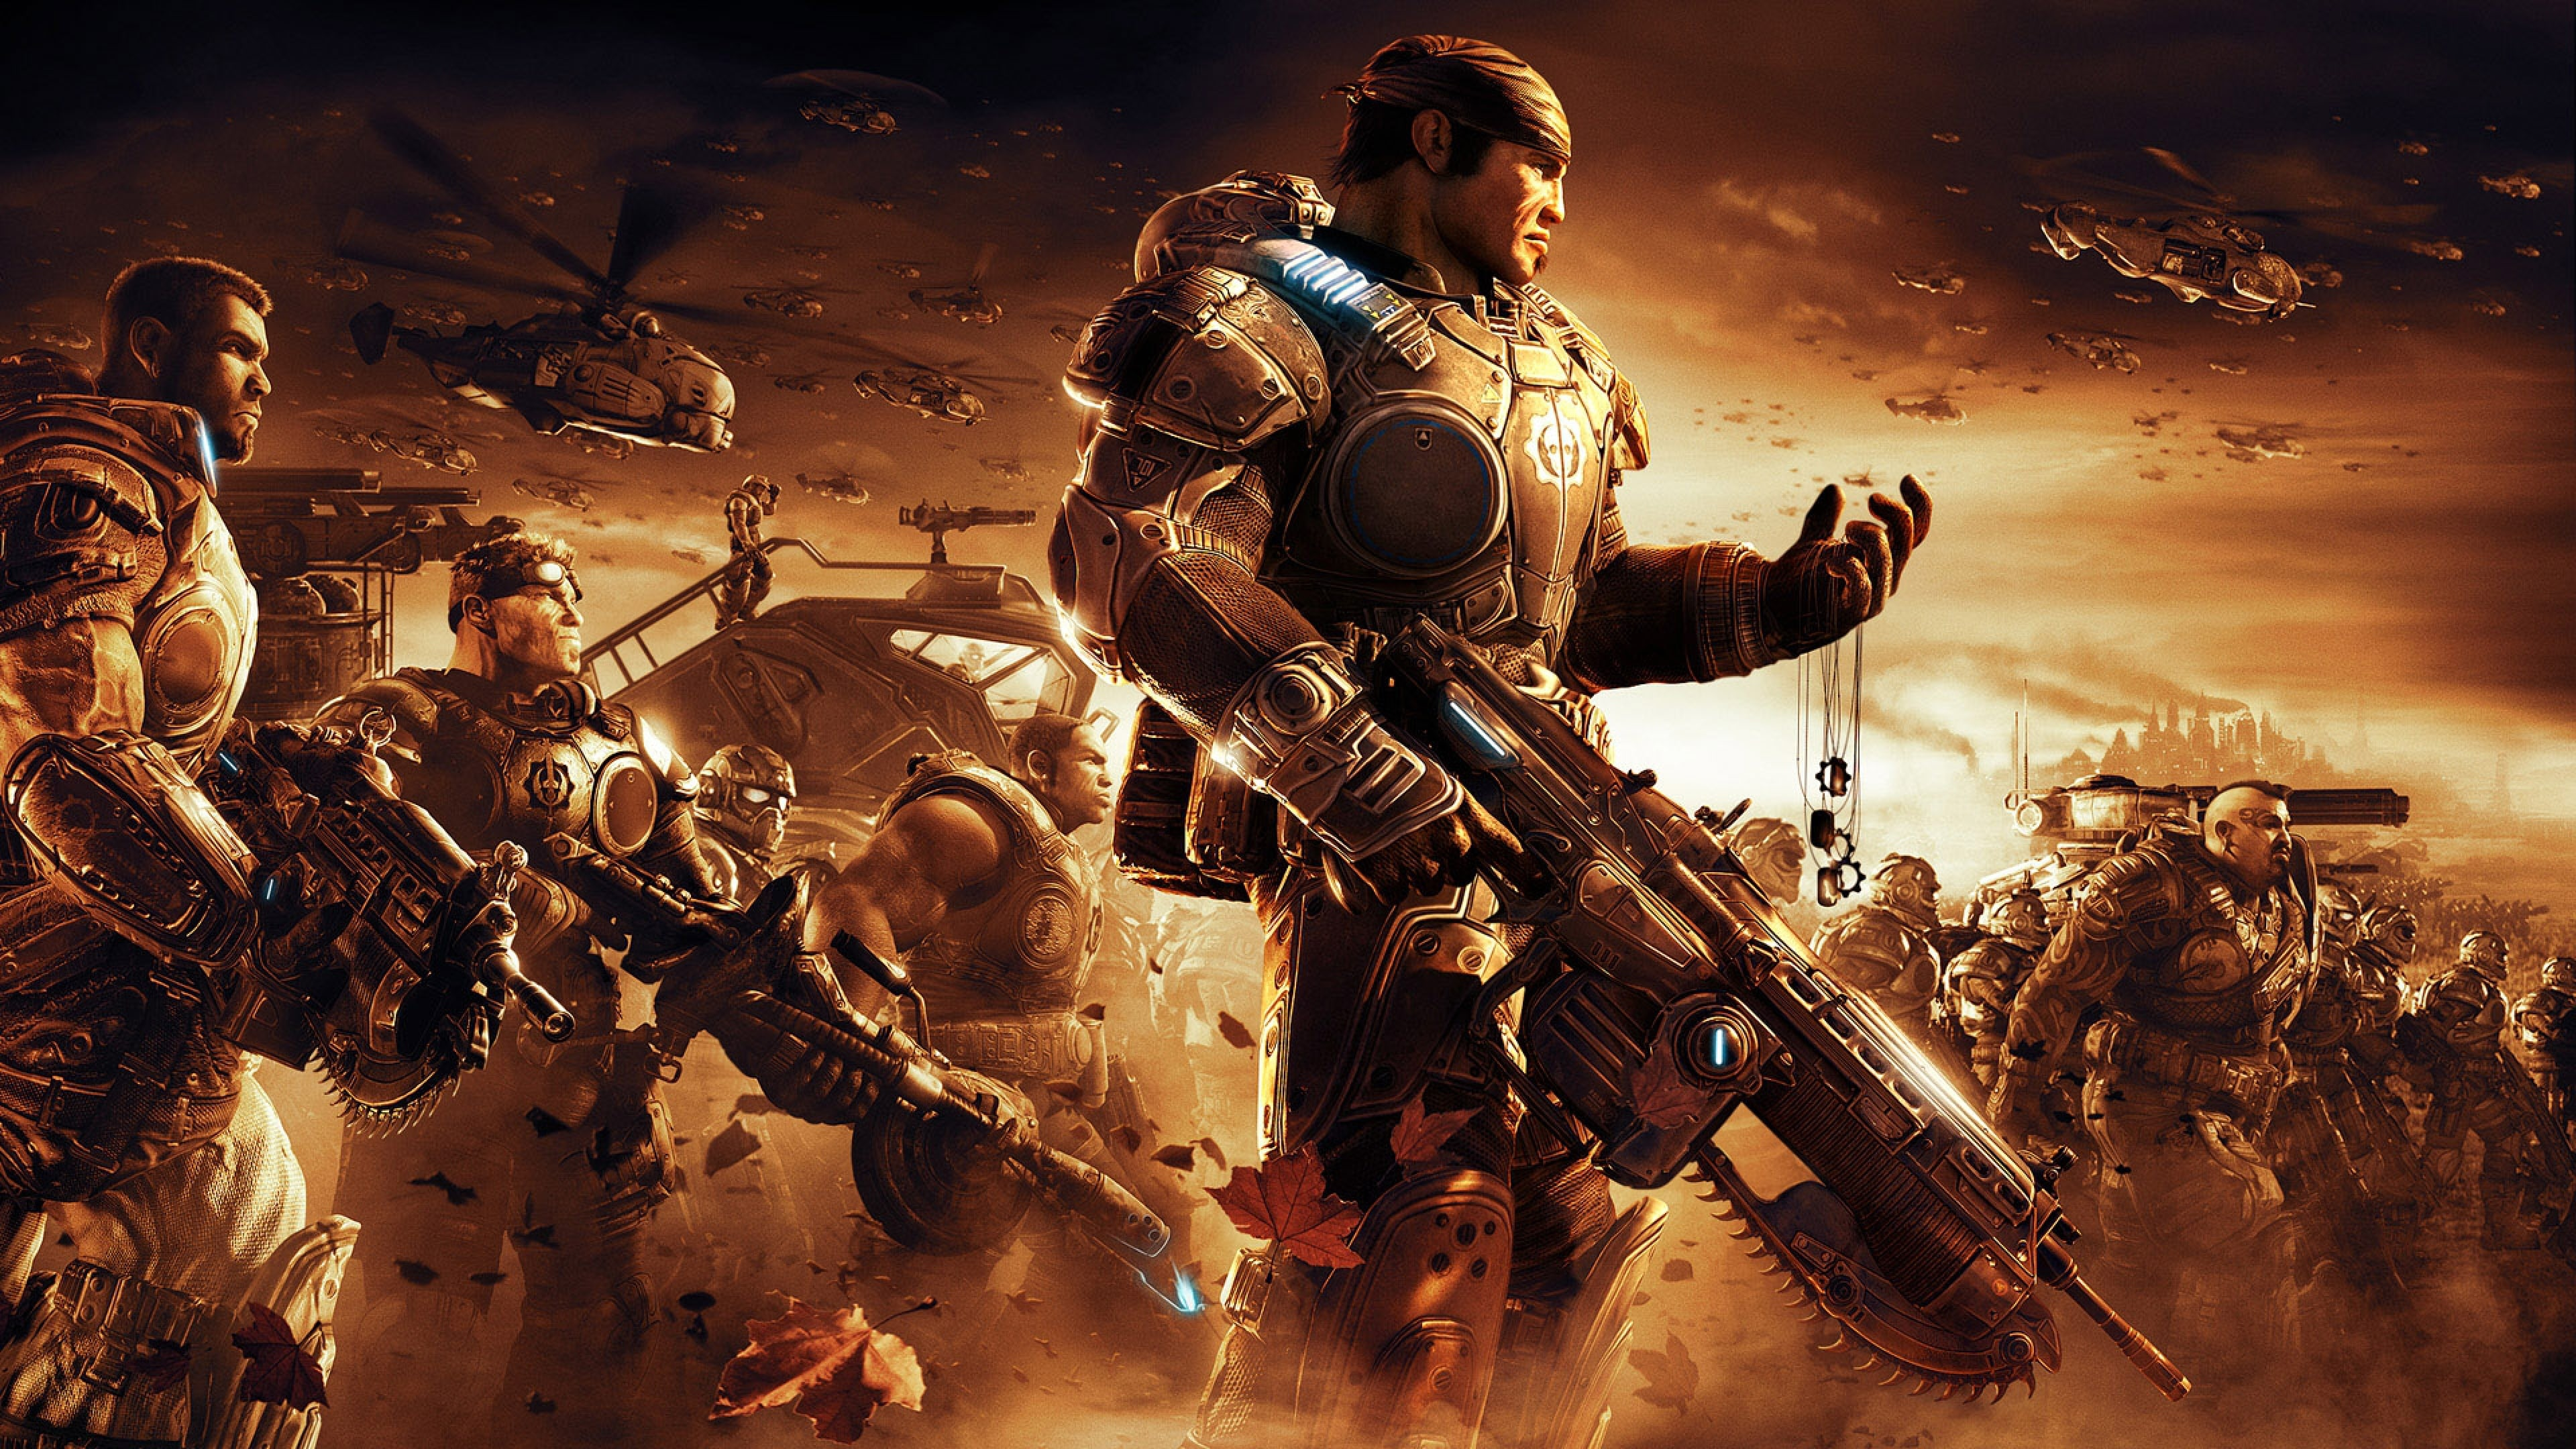 Gears of War 4 Background